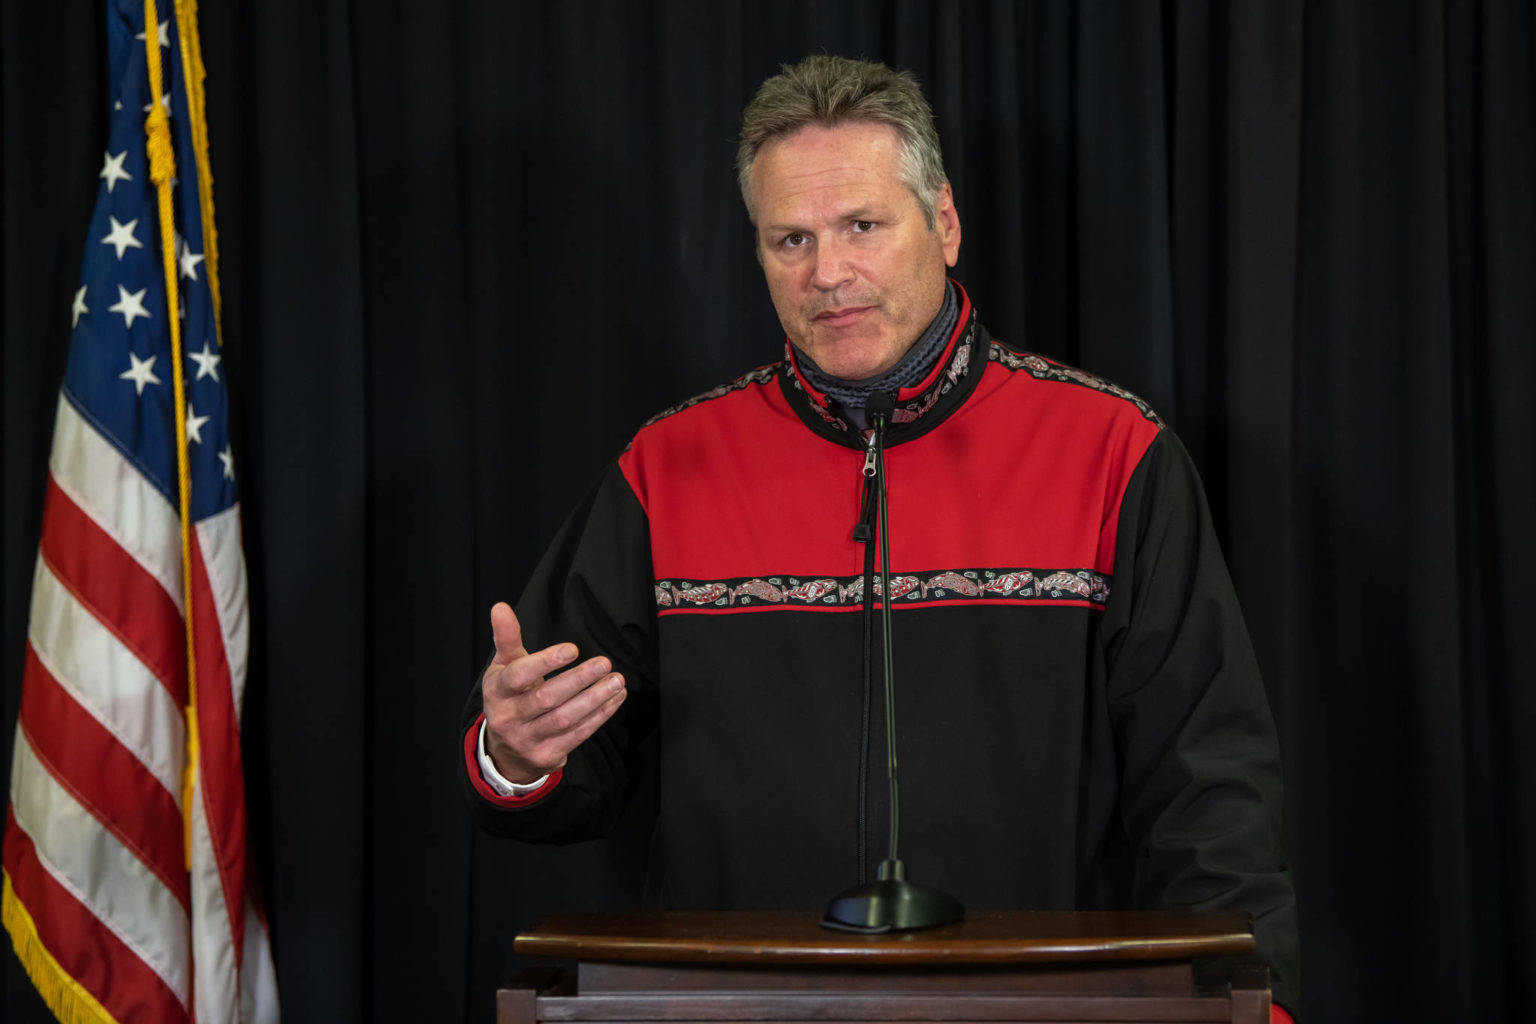 Gov. Mike Dunleavy speaks during an August news conference. On thursday, Dunleavy withdrew an executive order reorganizing the state's largest department, the Department of Health and Social Services, after lawmakers sought to block it. (Courtesy Photo / Office of Gov. Mike Dunleavy)